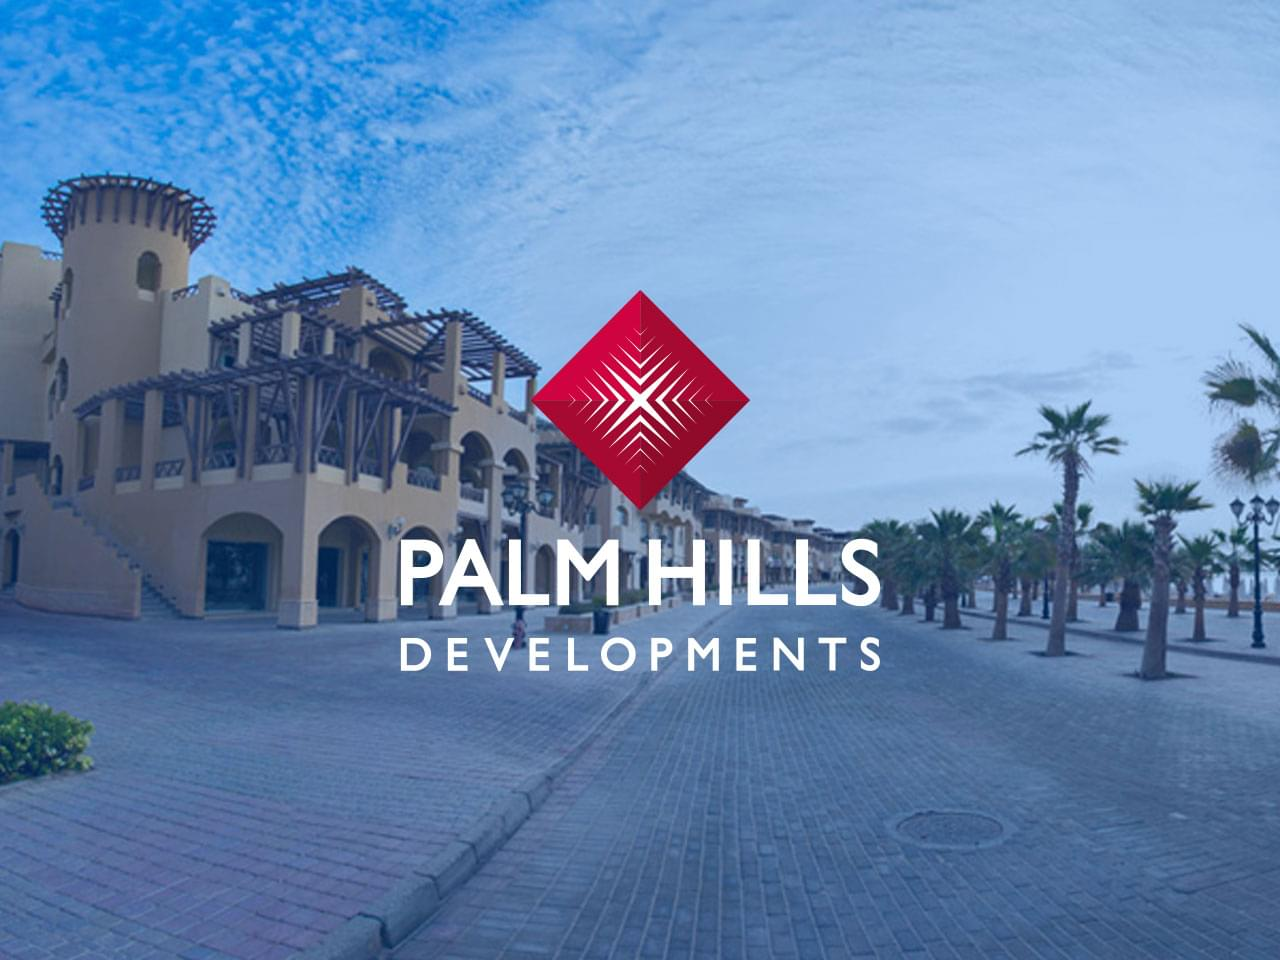 The need for liquidity is pushing the Emirati Union to leave completely from Palm Hills.